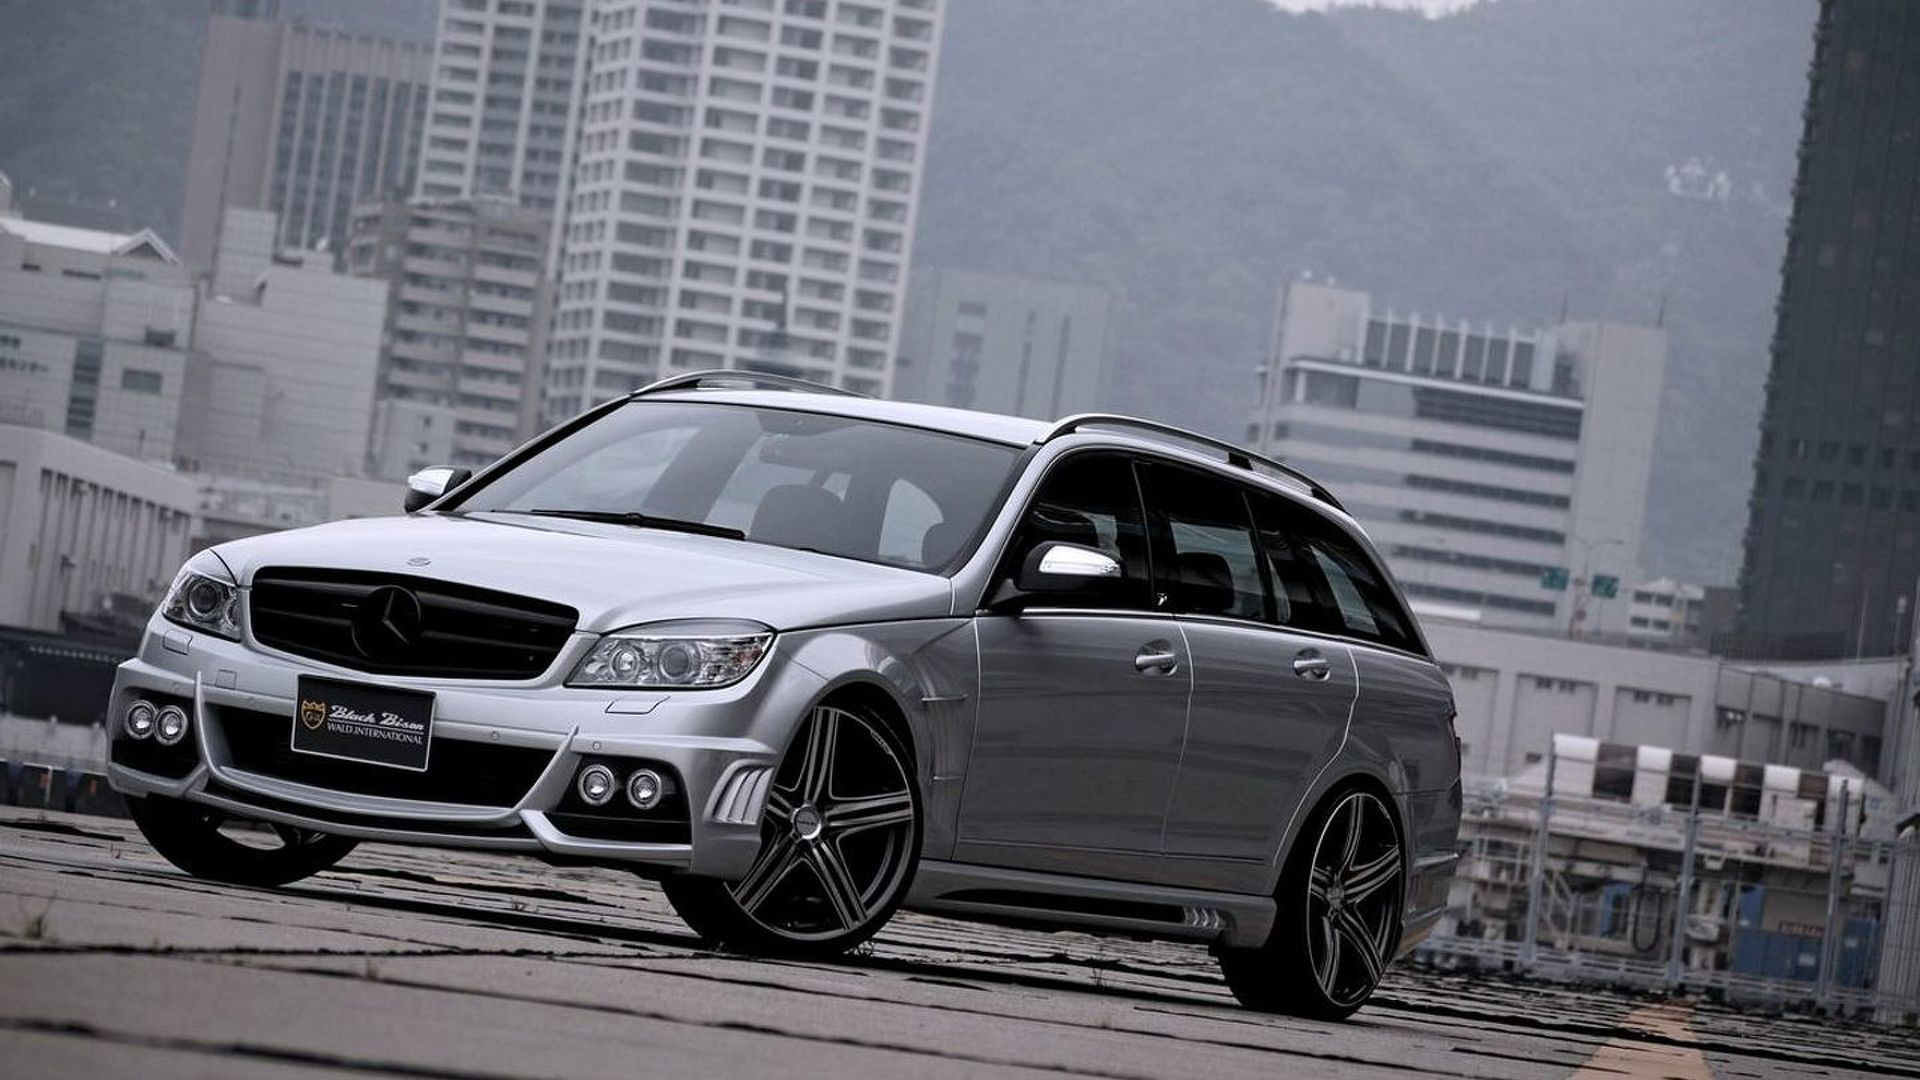 Black bison edition tuning package for the w204 mercedes benz c class - Wald Sports Line Black Bison Editions For Mercedes C Class Wagon R Class